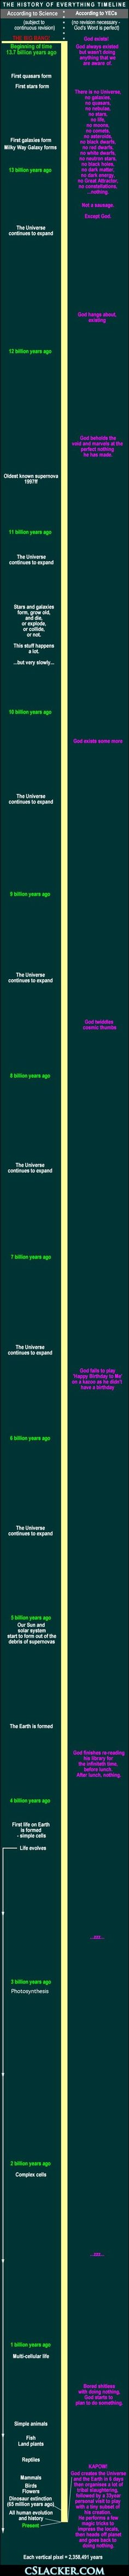 Atheism, Religion, God is Imaginary, Creationism, Science, The Big Bang, Evolution, Death, Murder, Jesus. The History of Everything Timeline. According to Science (subject to continuous revision). According to Religion (no revision necessary - god's word is perfect).